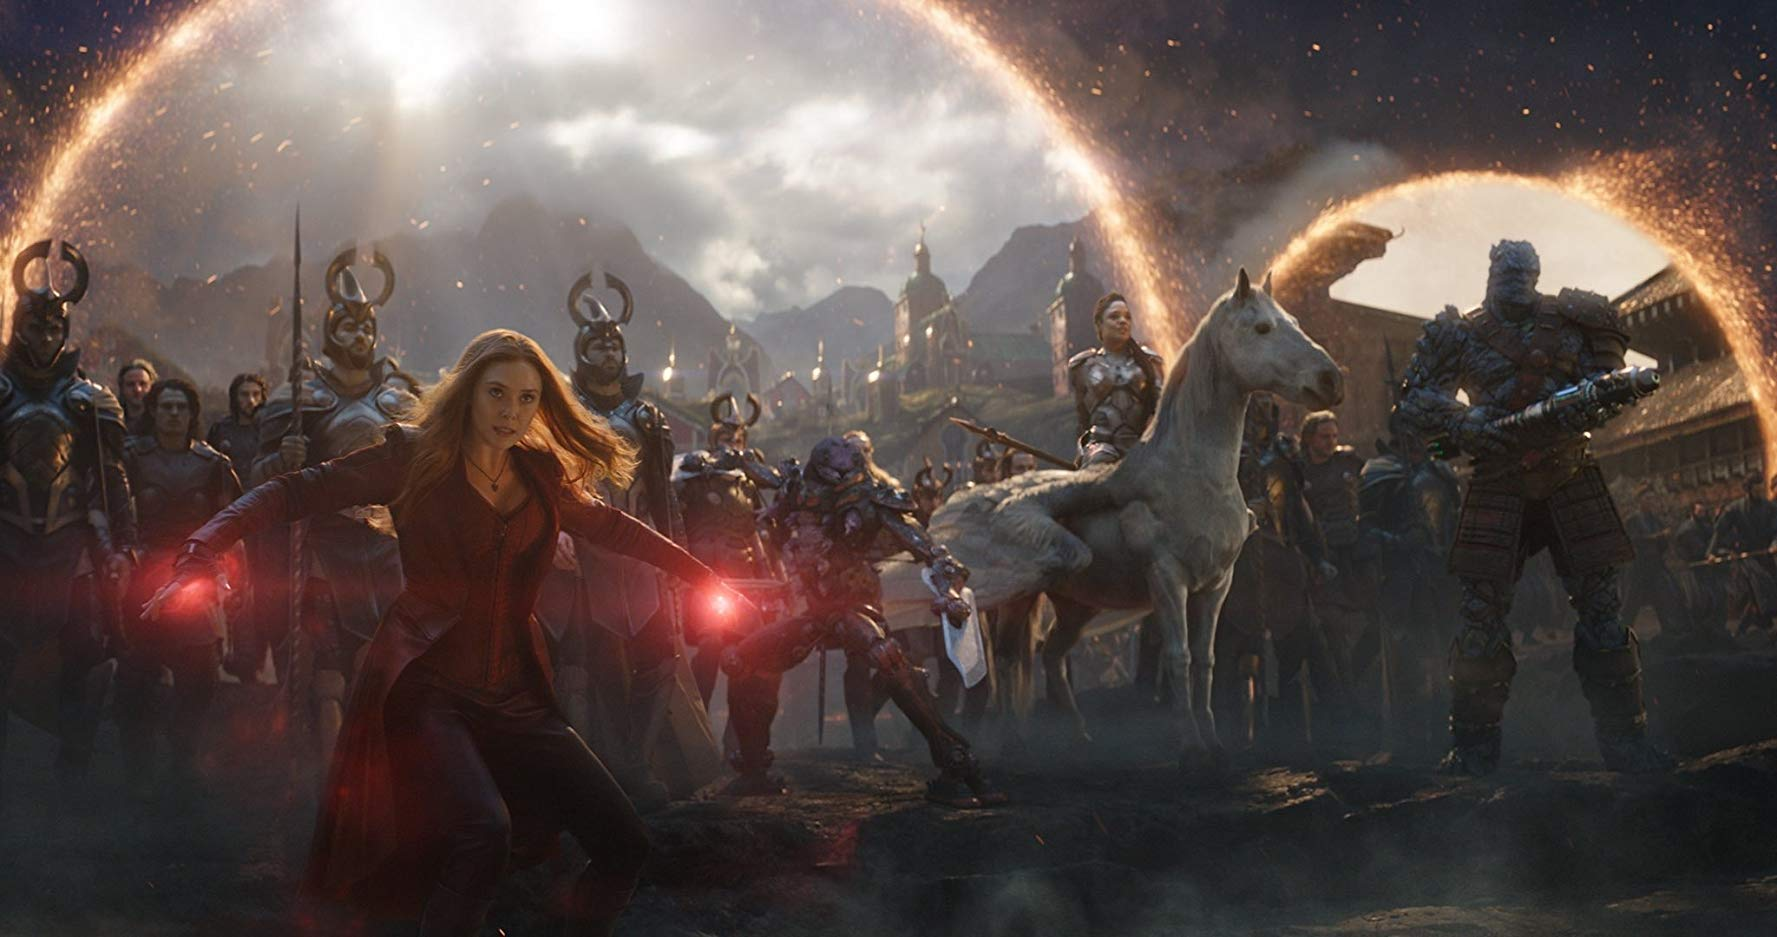 'Avengers: Endgame' Failing to Overtake 'Avatar' for Box Office Record